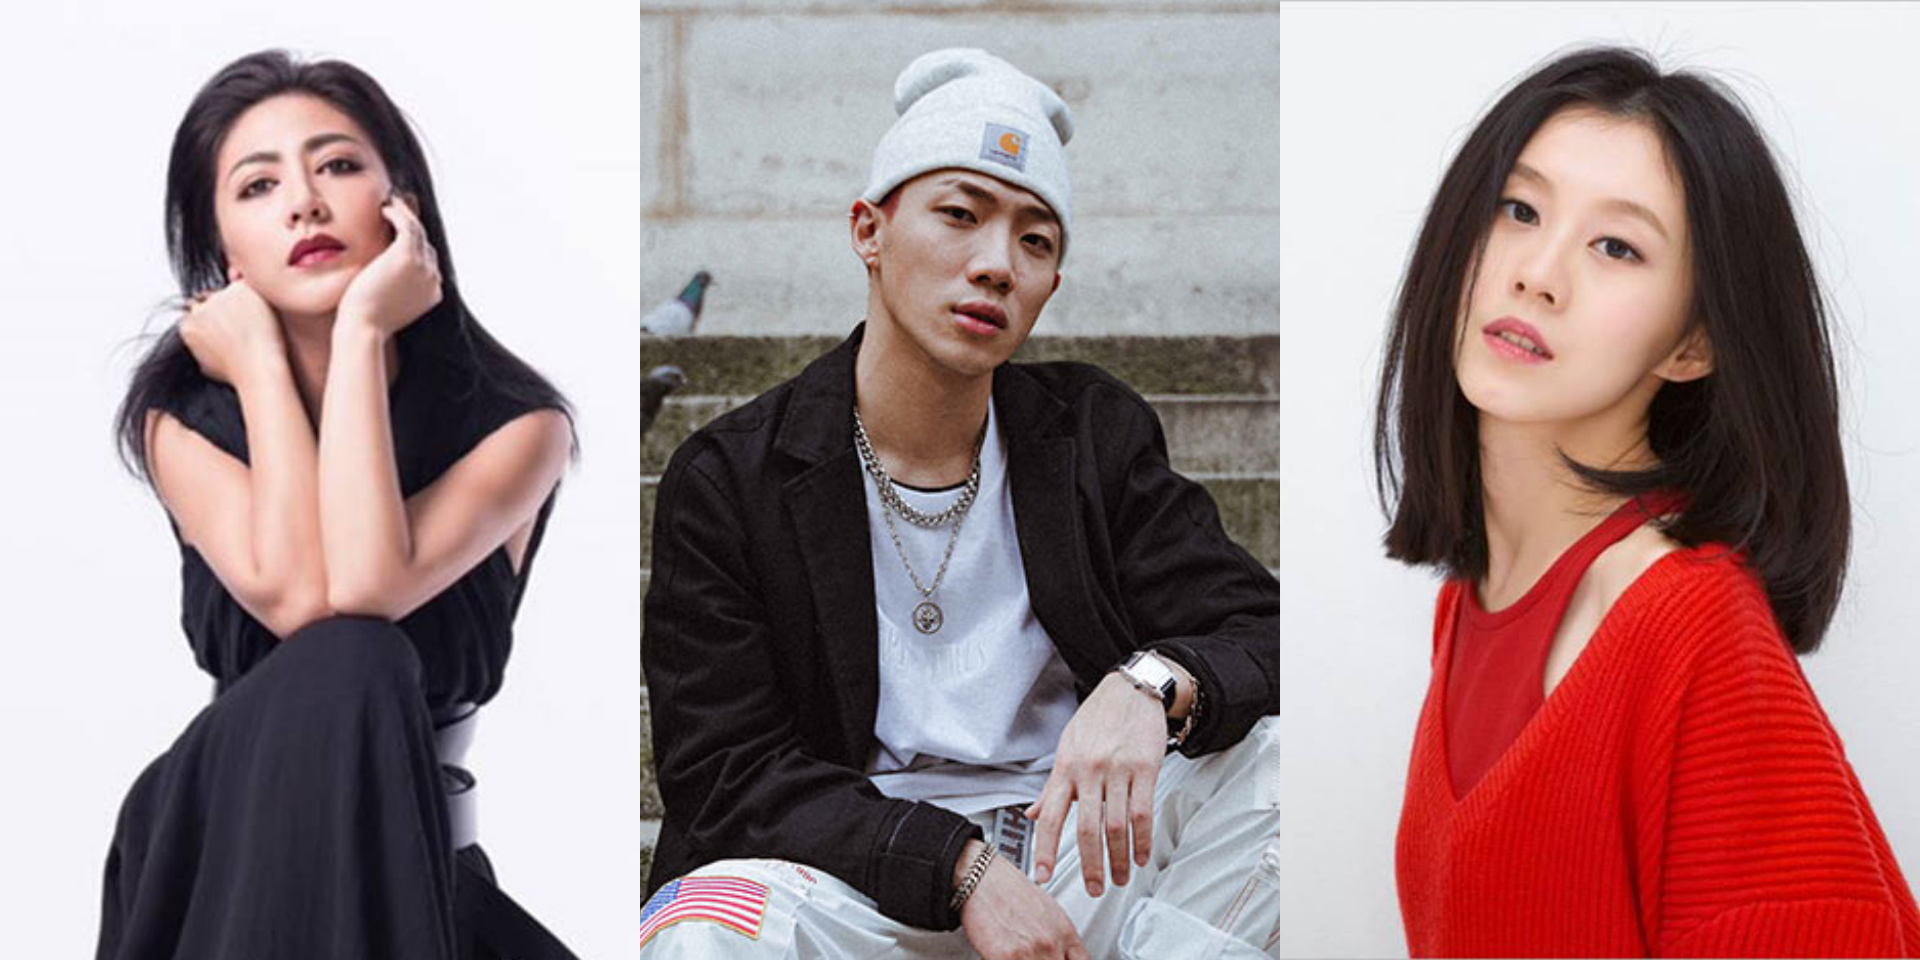 Huayi – Chinese Festival of Arts 2020 will feature ØZI, Eve Ai, Ann Bai, and more